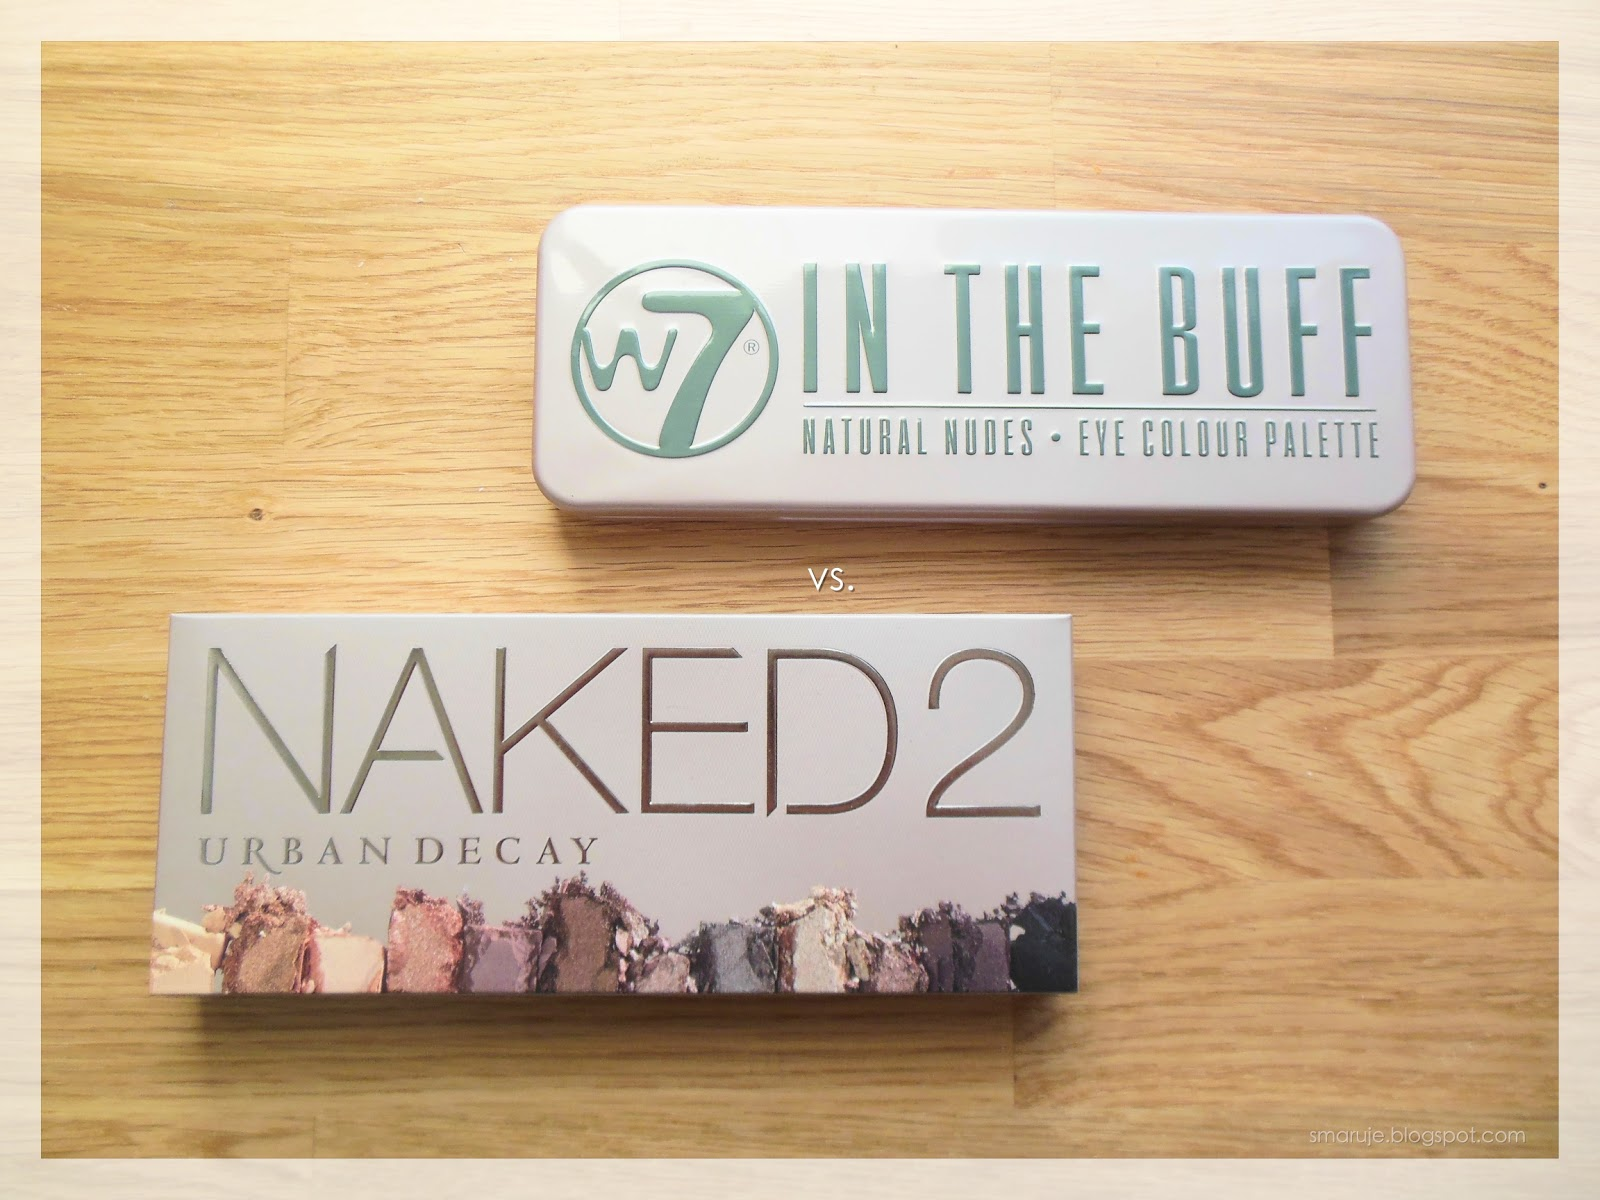 In The Buff to kopia Naked 2